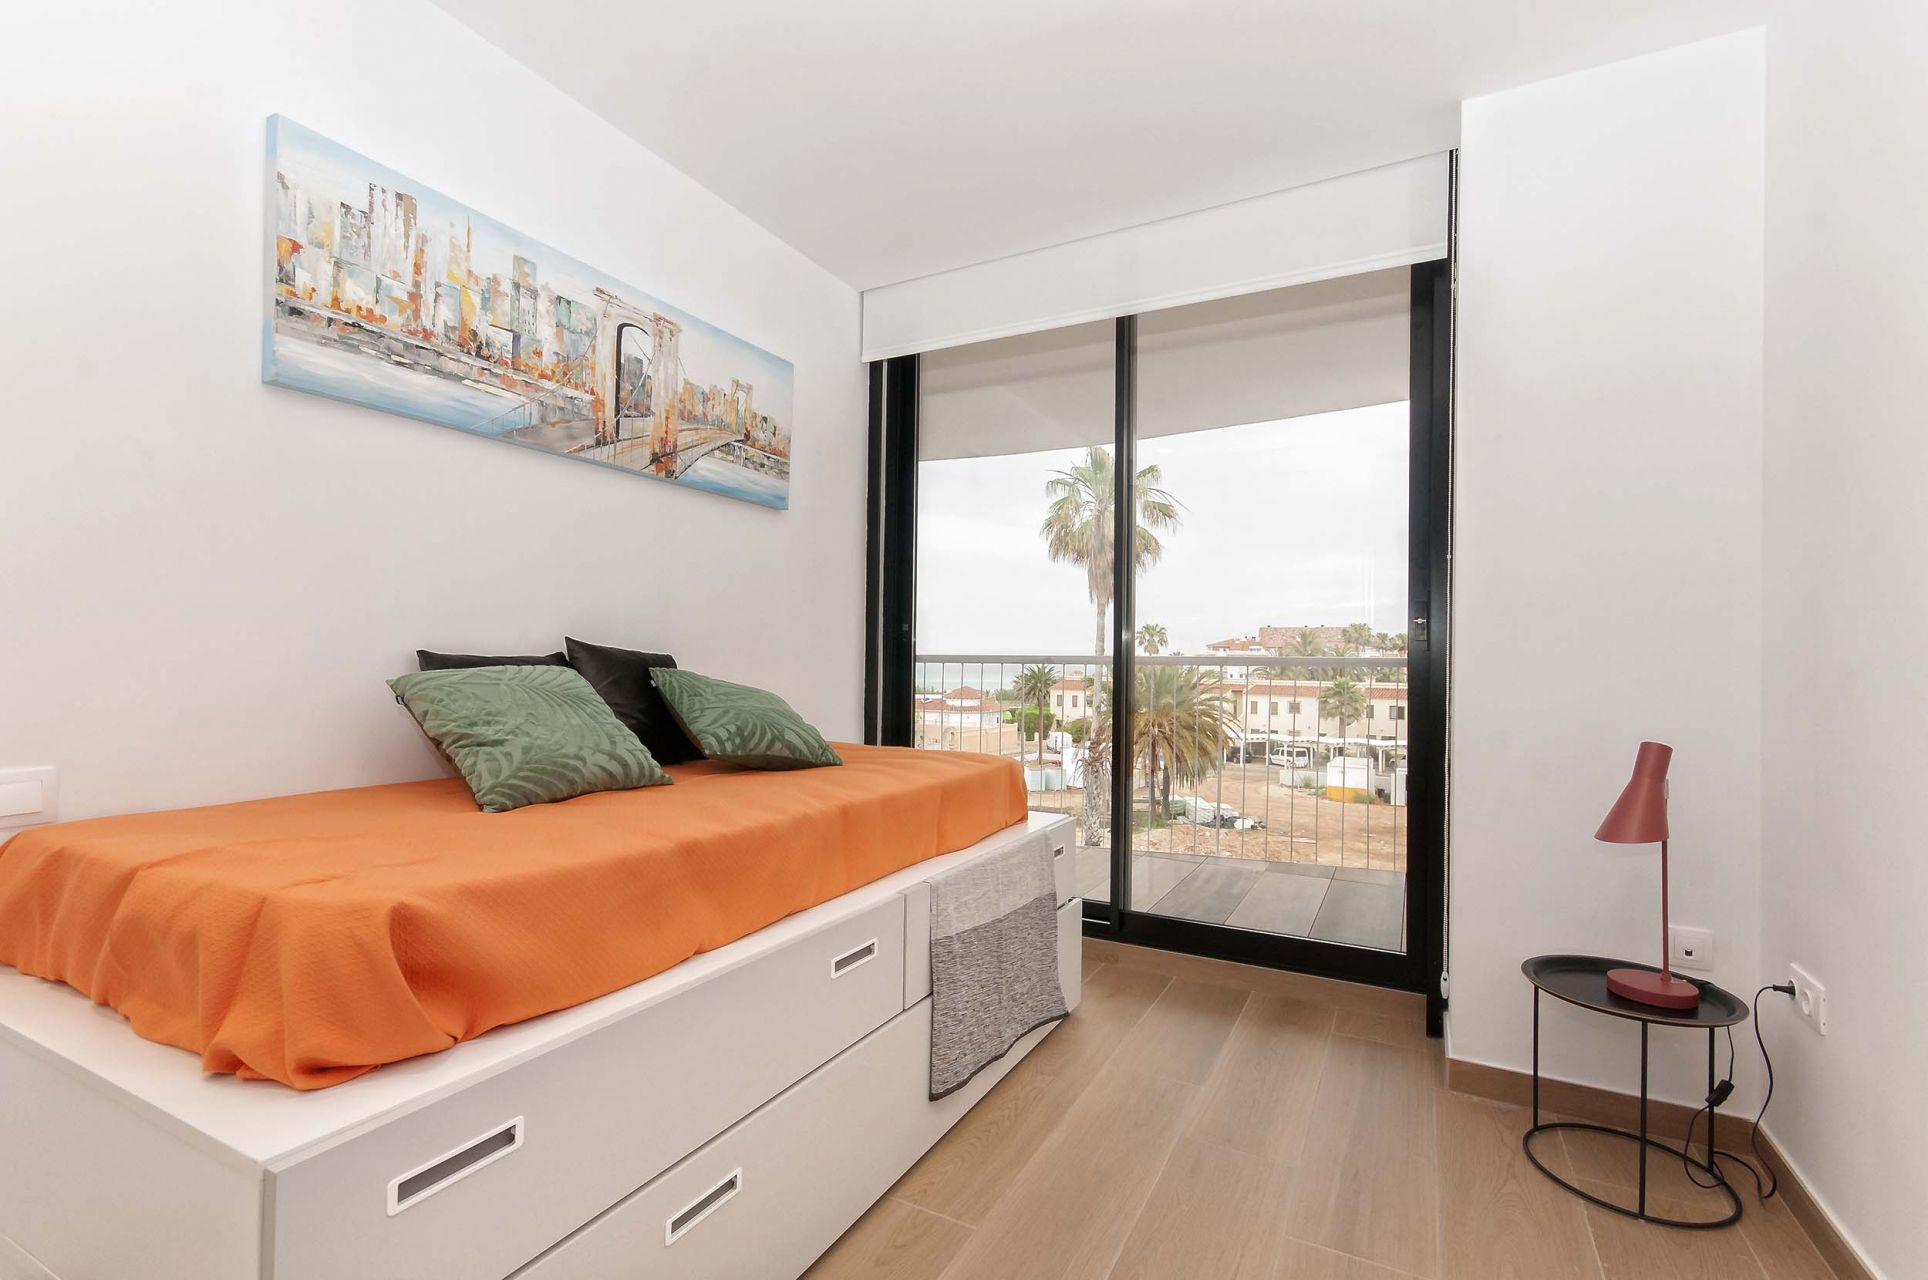 Denia Beach - 1, 2 and 3 bedroom apartments with terrace overlooking the sea or with views over the Montgó mountain, at the beach of La Almadraba beach 13